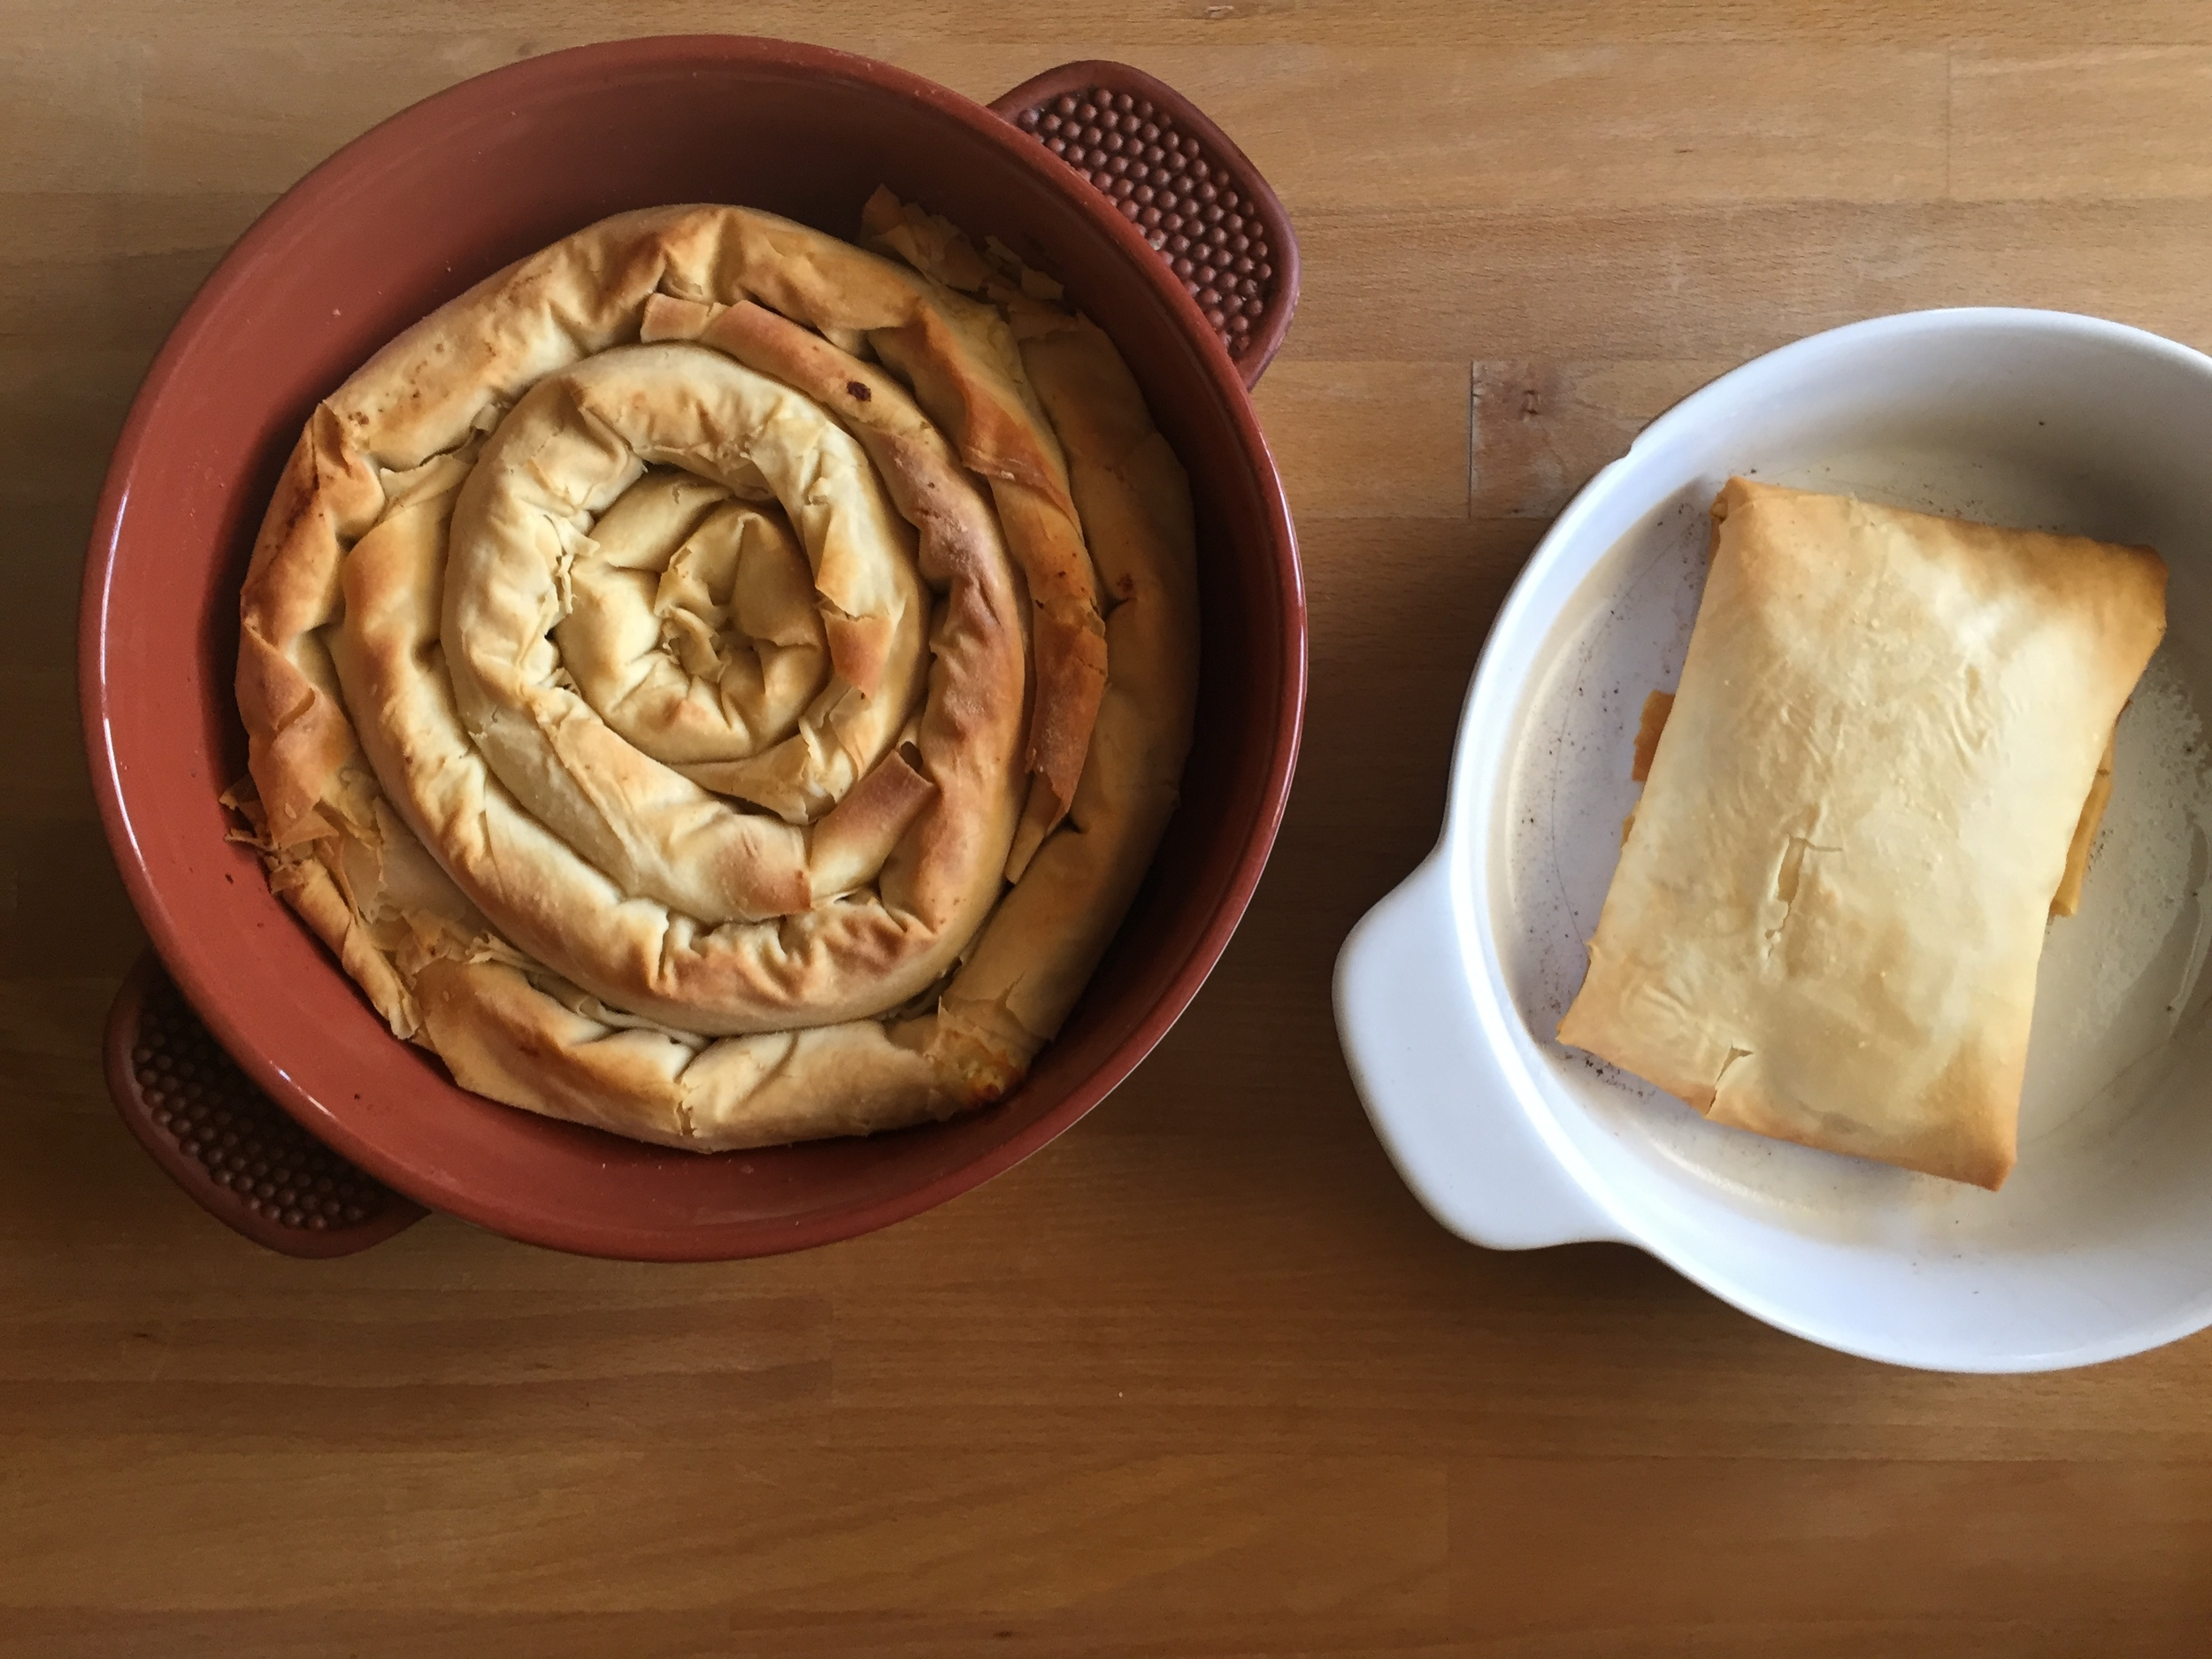 Recipe: Greek cheese phyllo-pastry pie, finished with a dash of honey and walnut crumbs